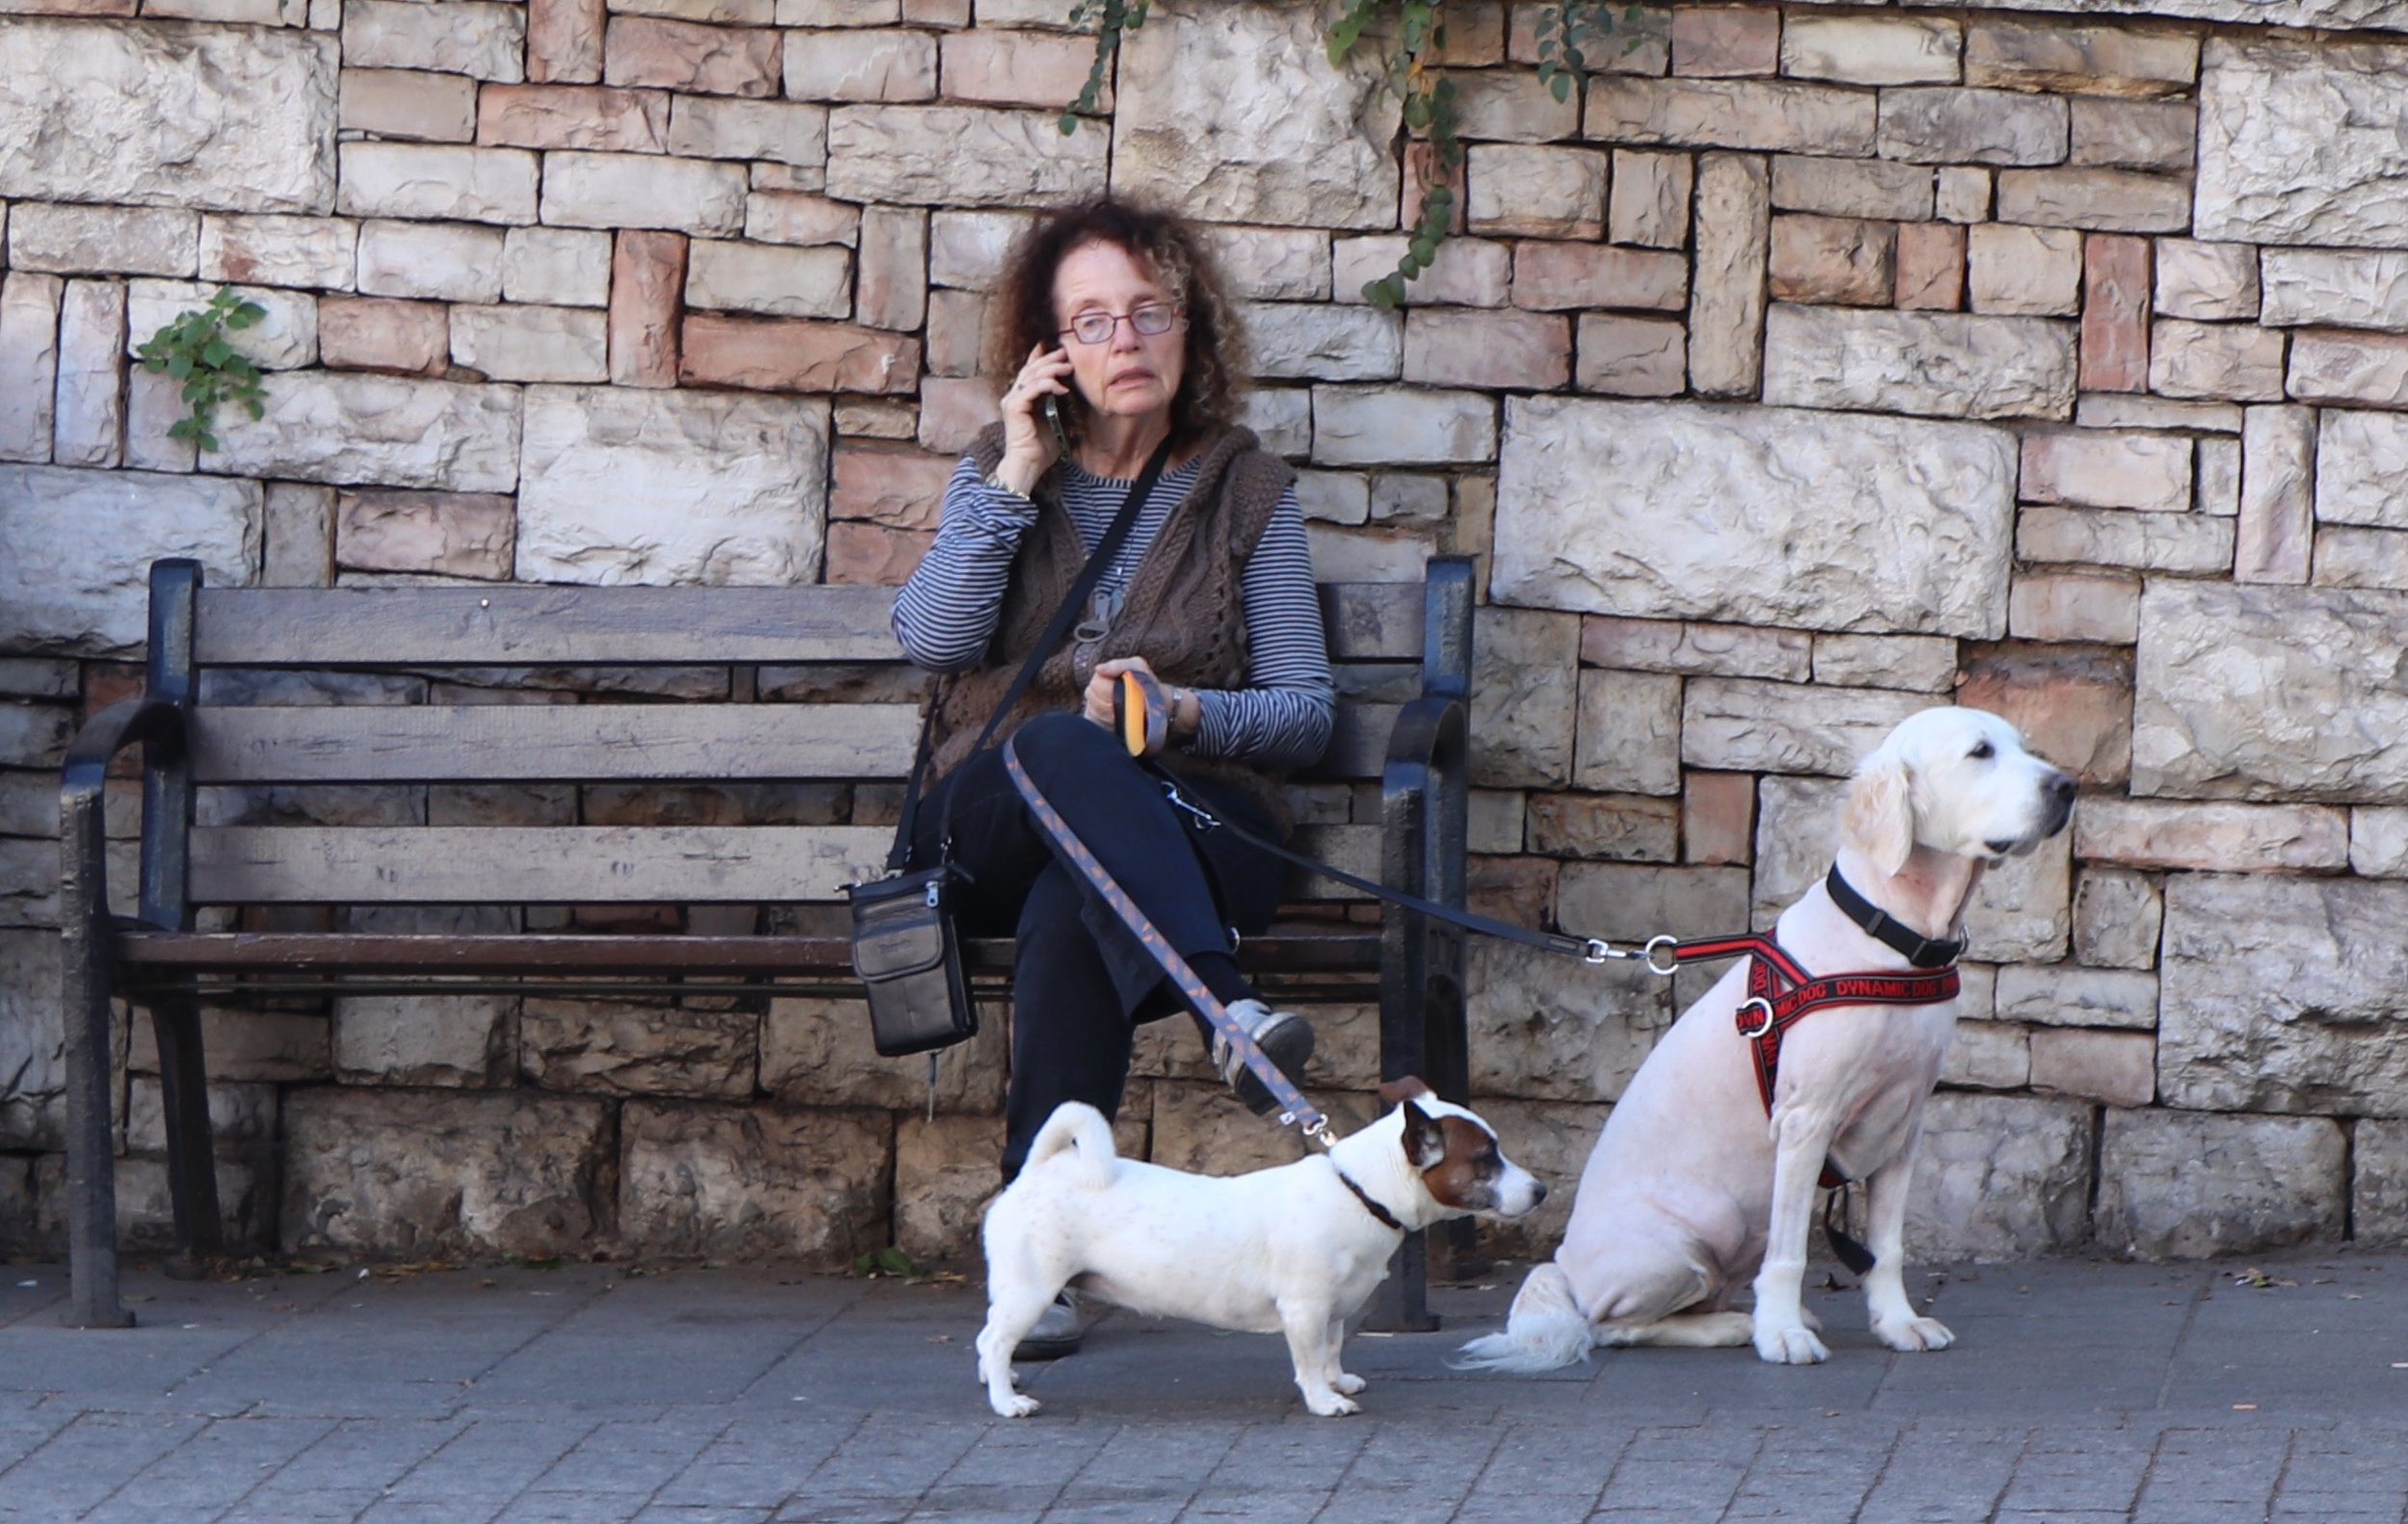 lady with dogs lower quality.jpg